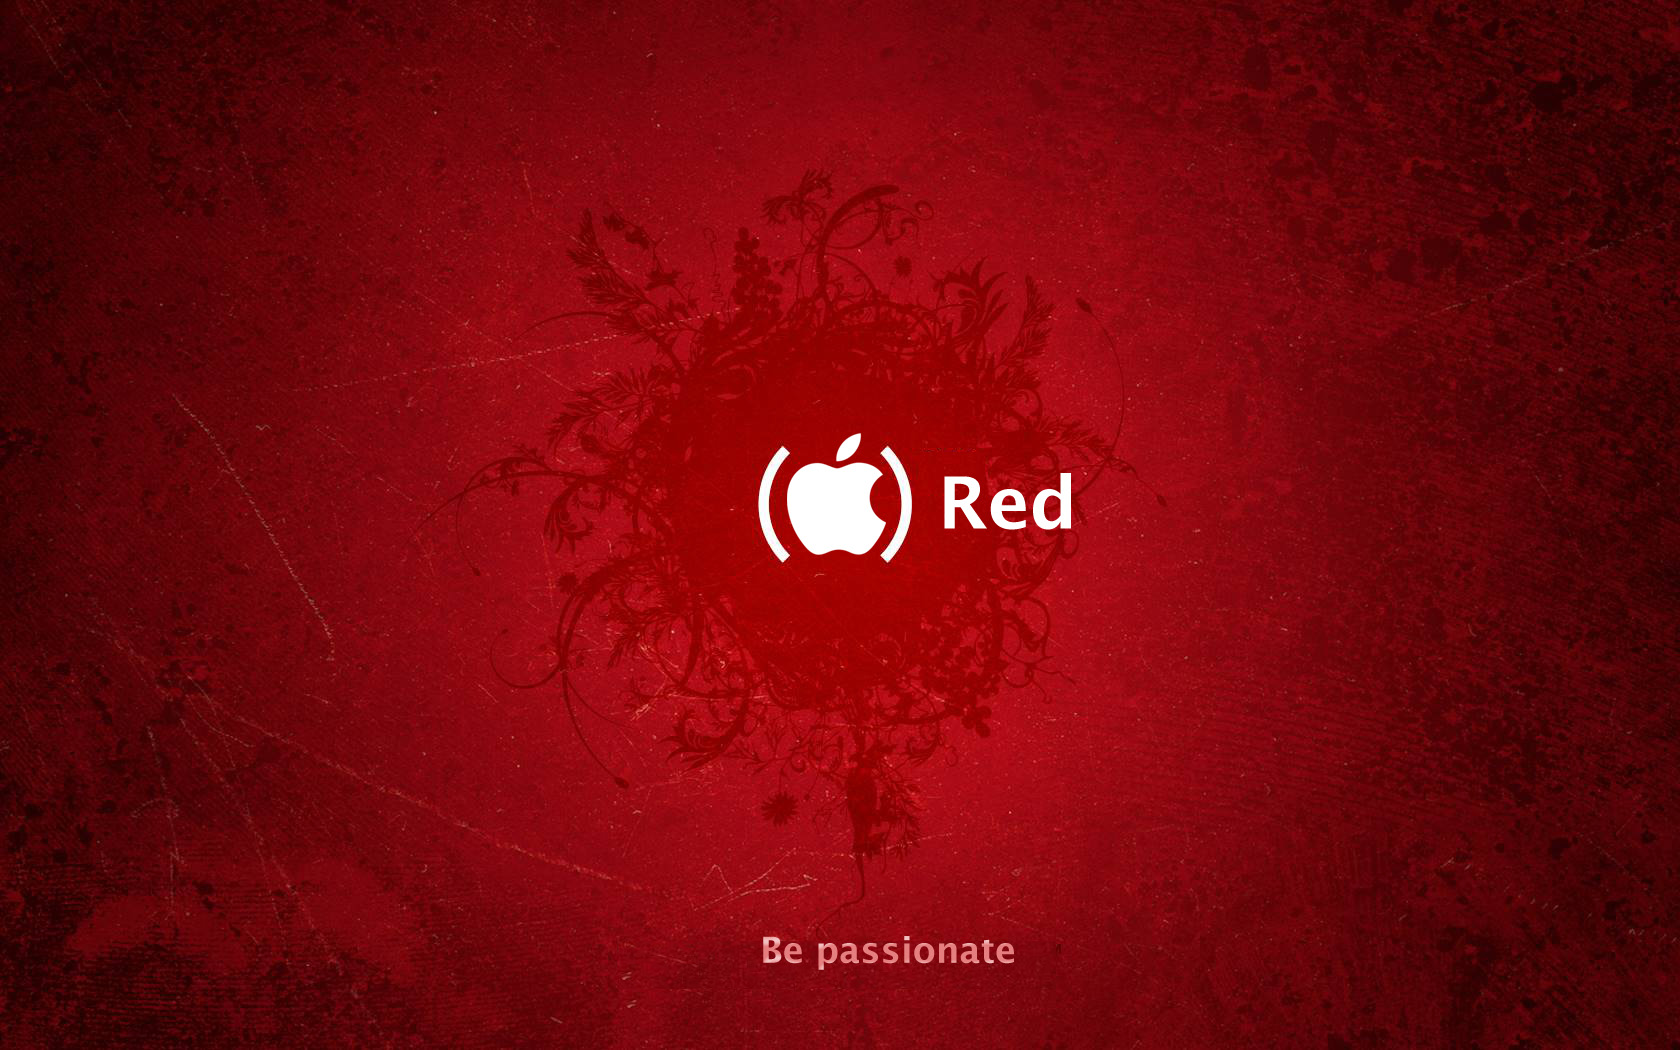 red apple wallpaper - sf wallpaper